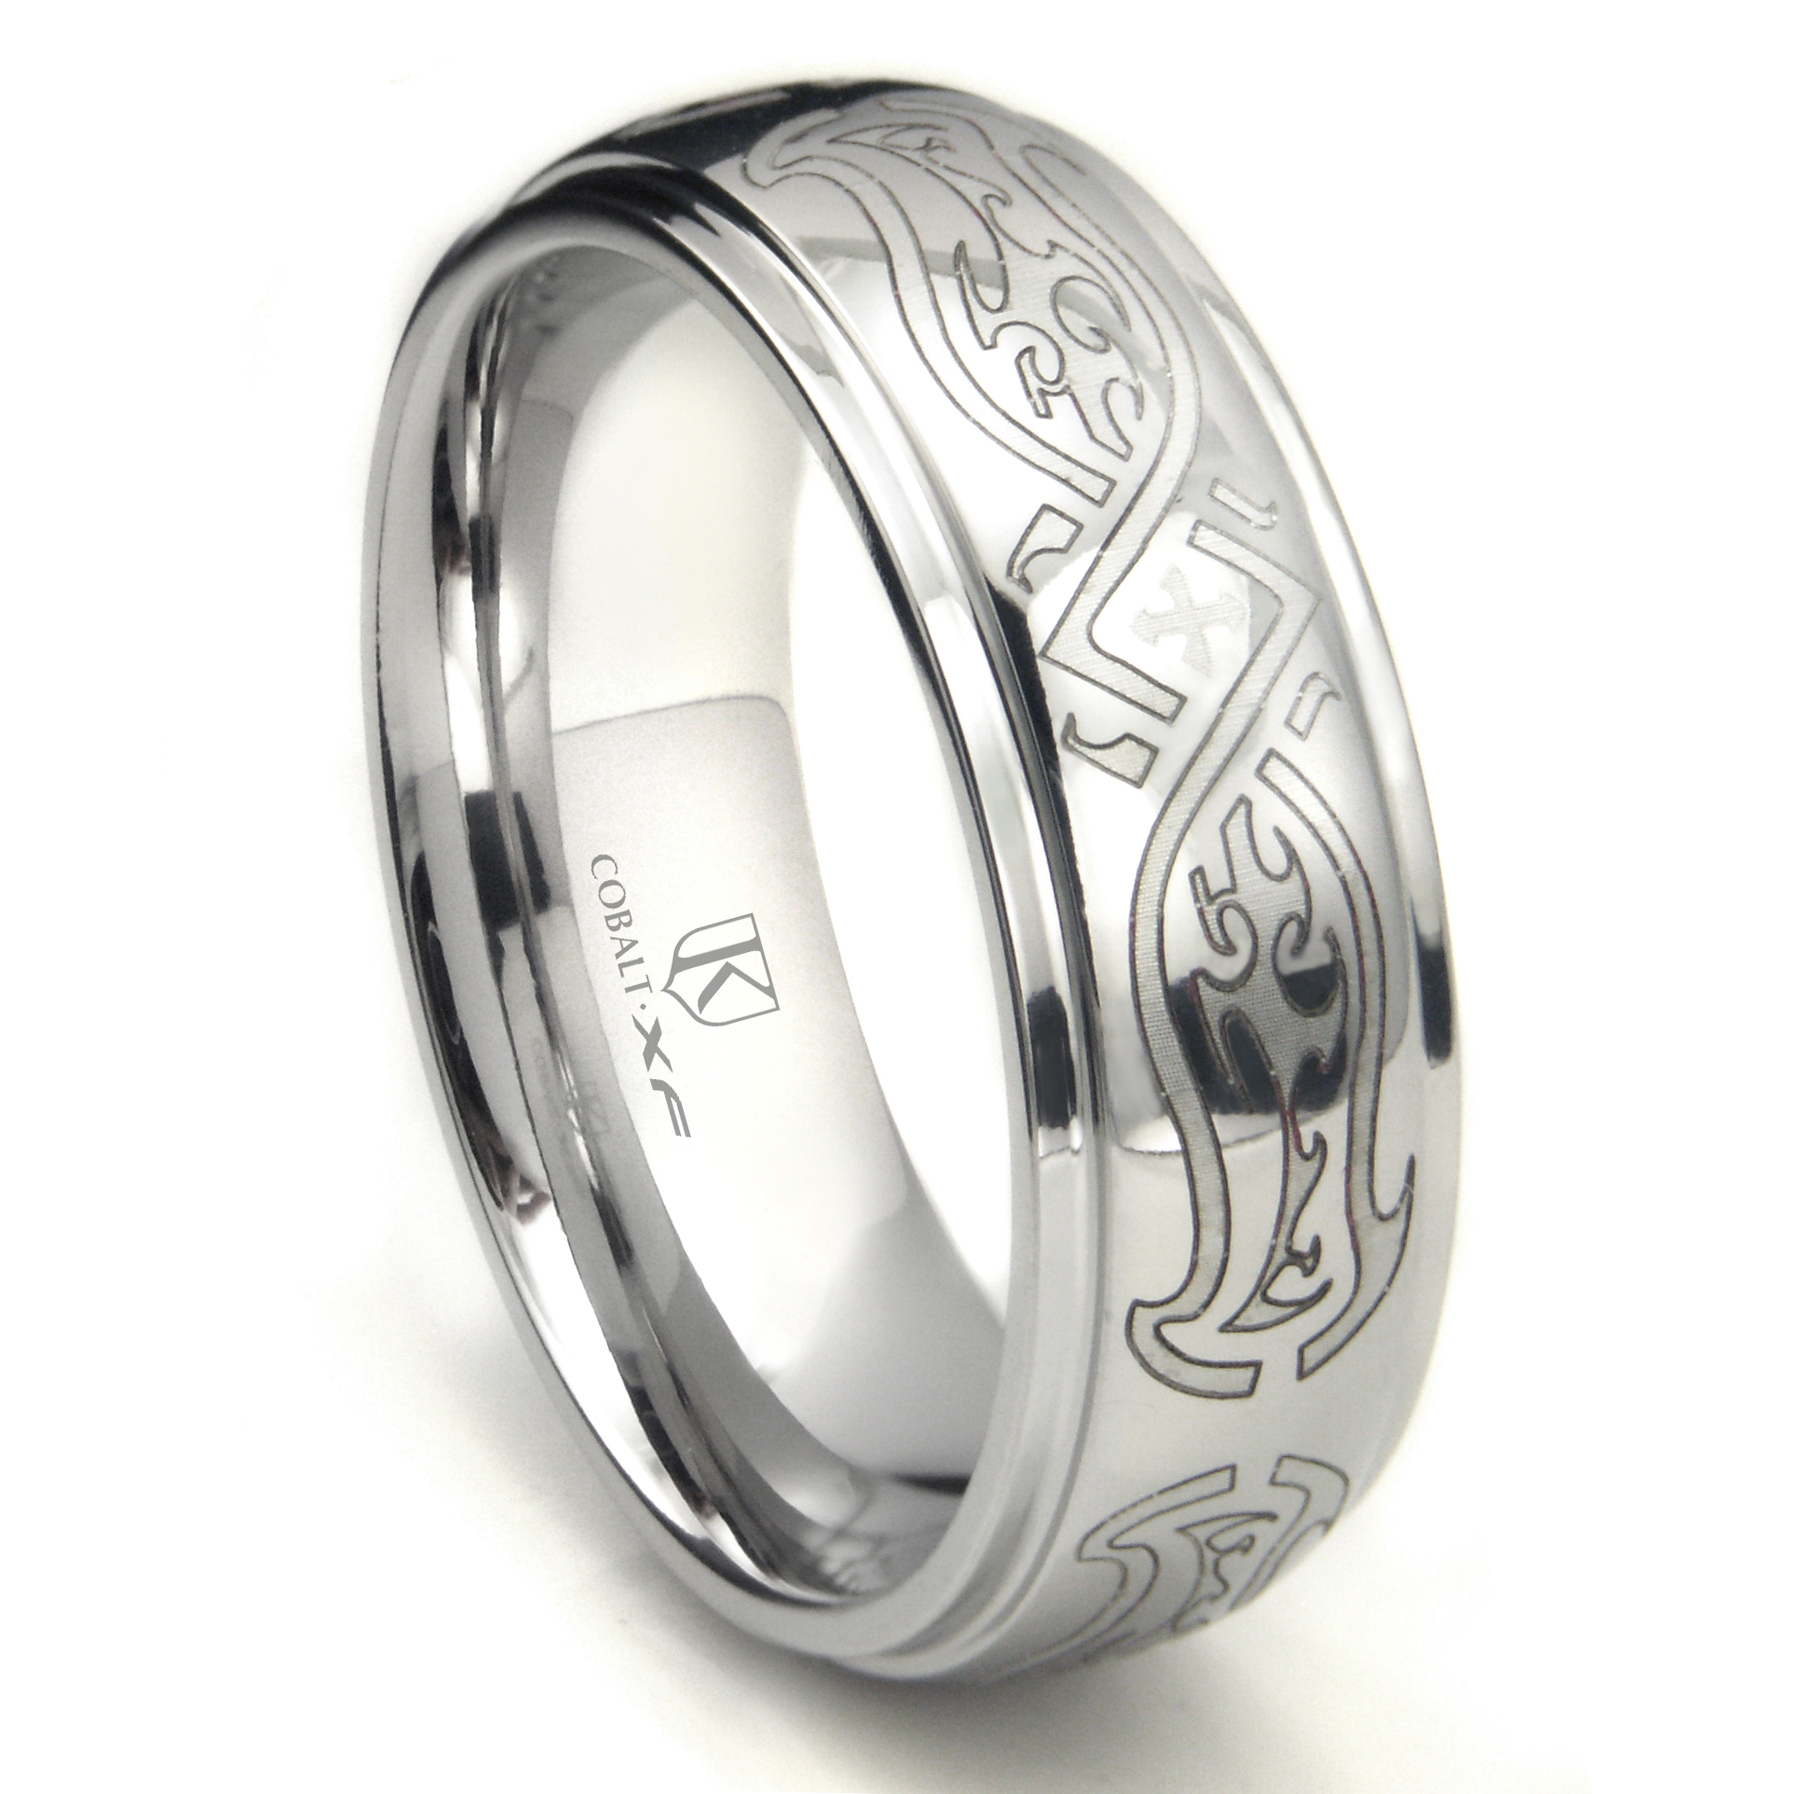 rings celtic wedding elegant gaelic from engagement scotland